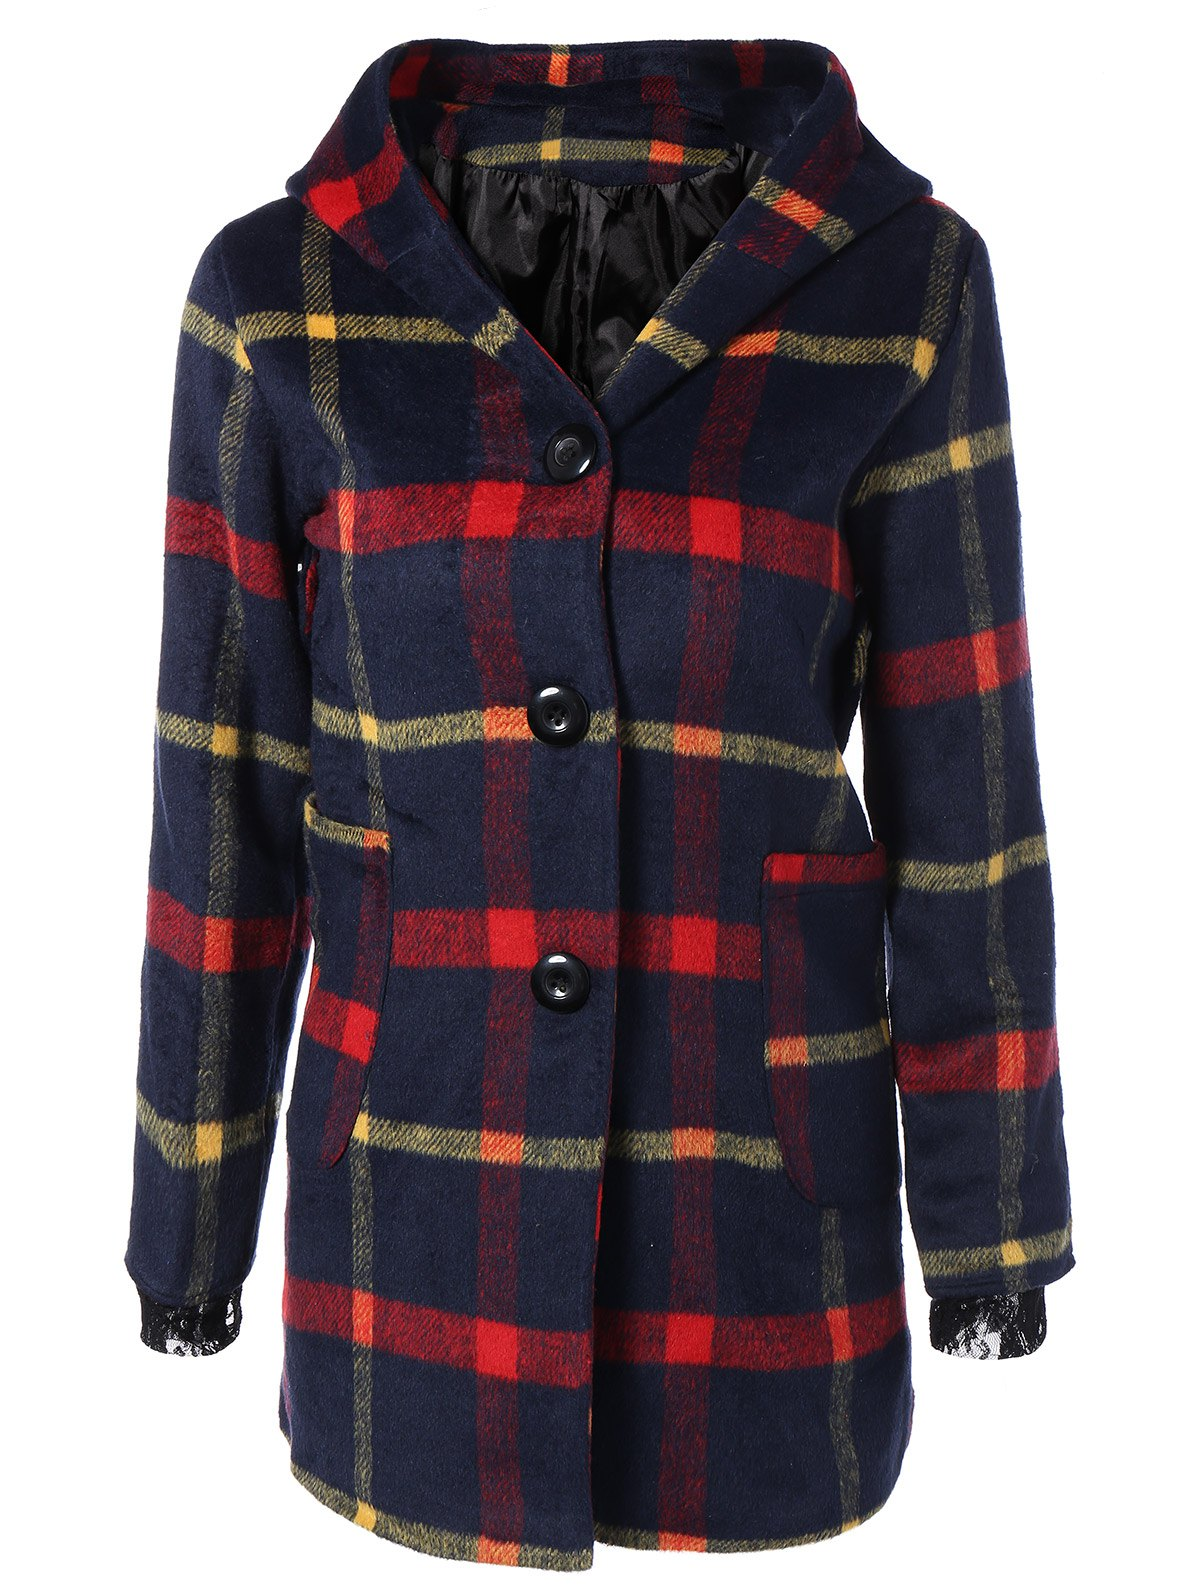 Checked Woolen Coat With Hoodie - PURPLISH BLUE S